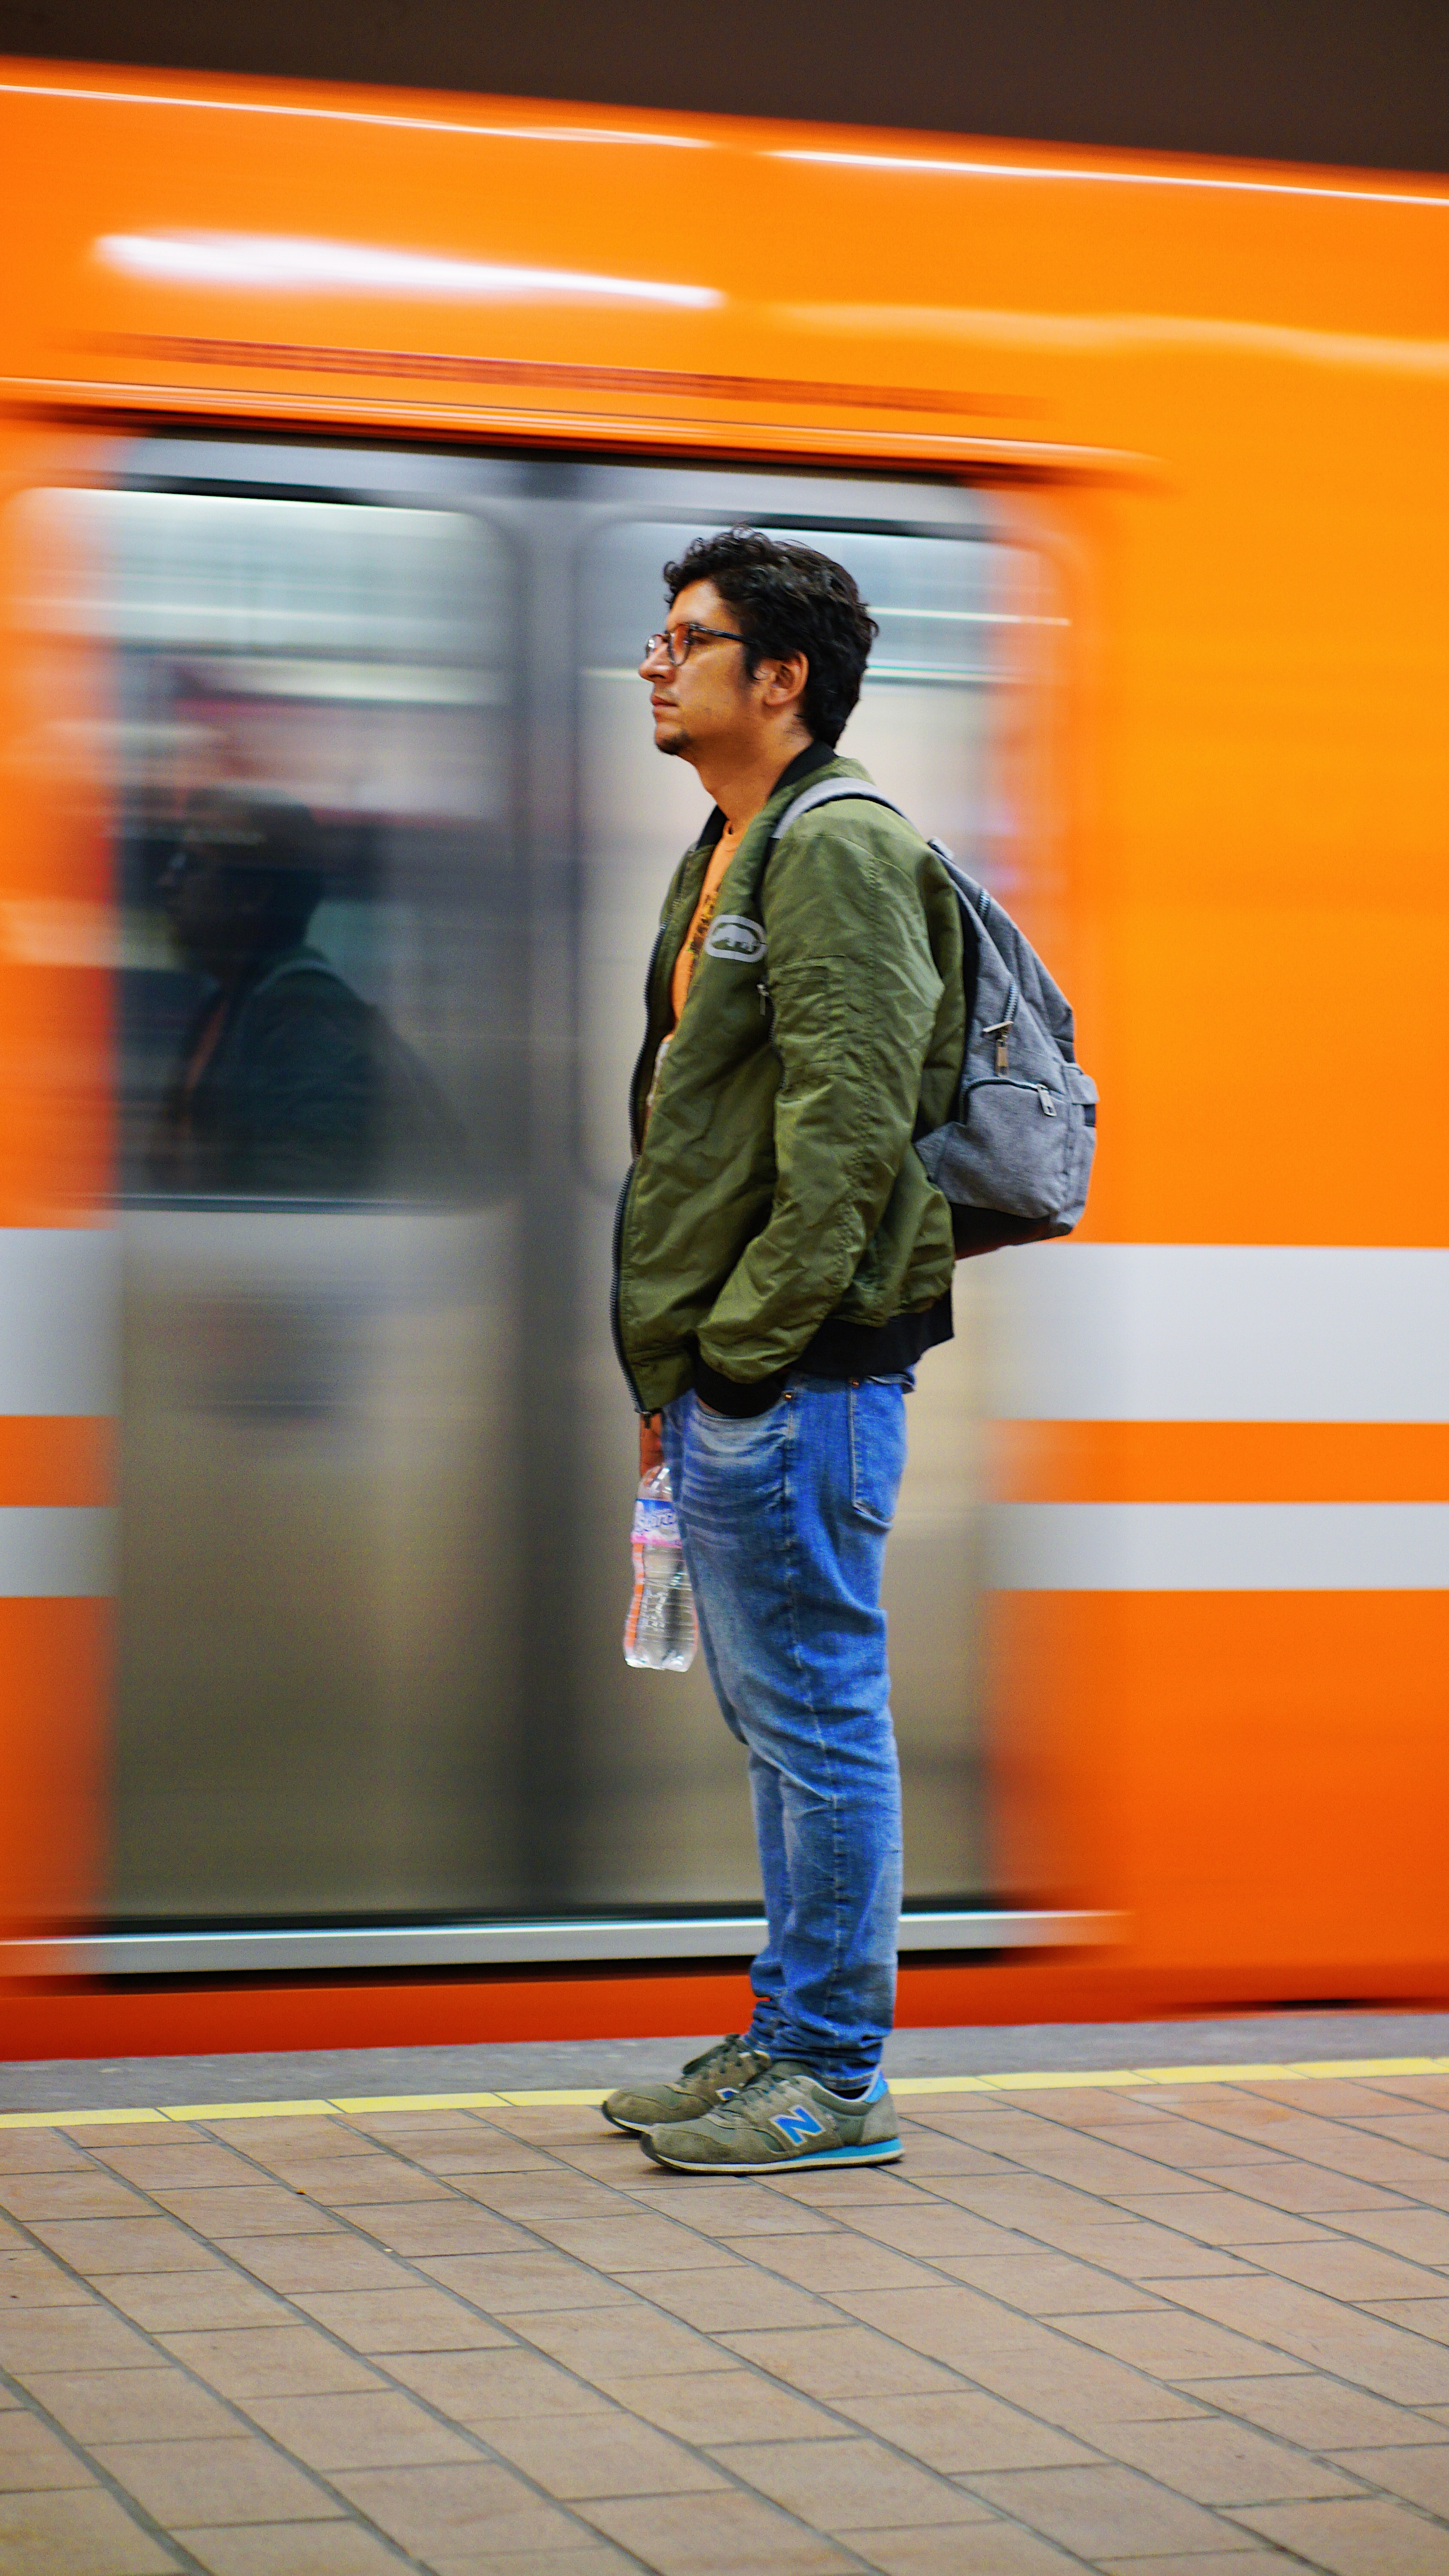 time lapse photography of train beside man